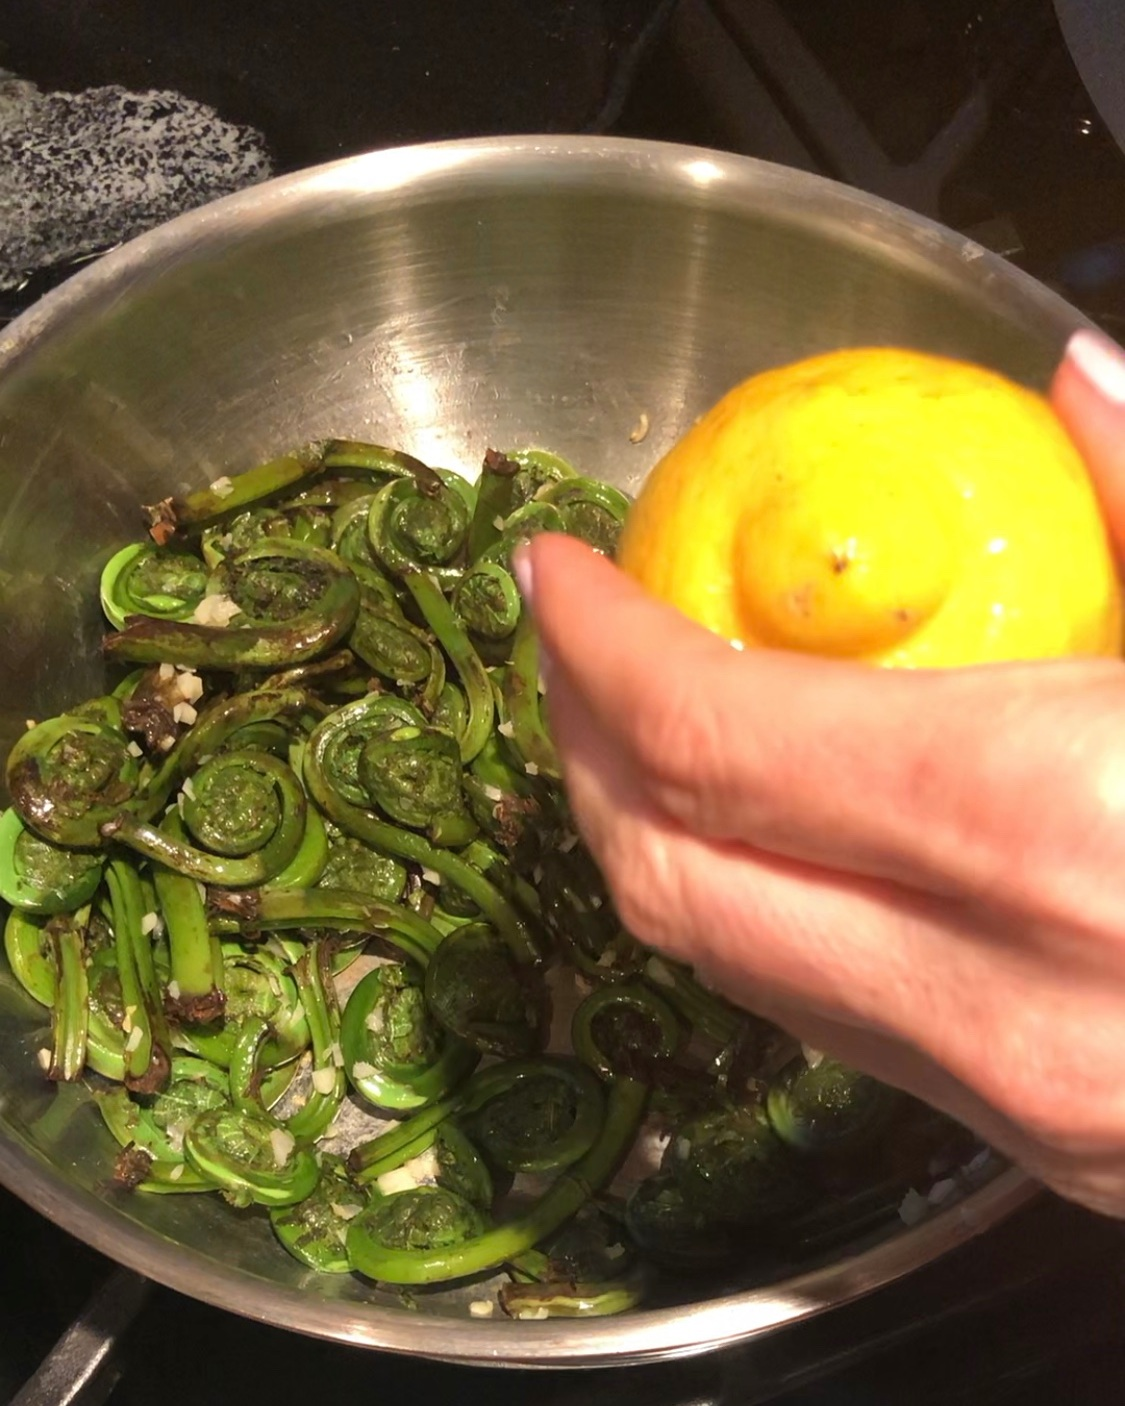 Stir in the fiddleheads and add the lemon juice, mixing everything together.